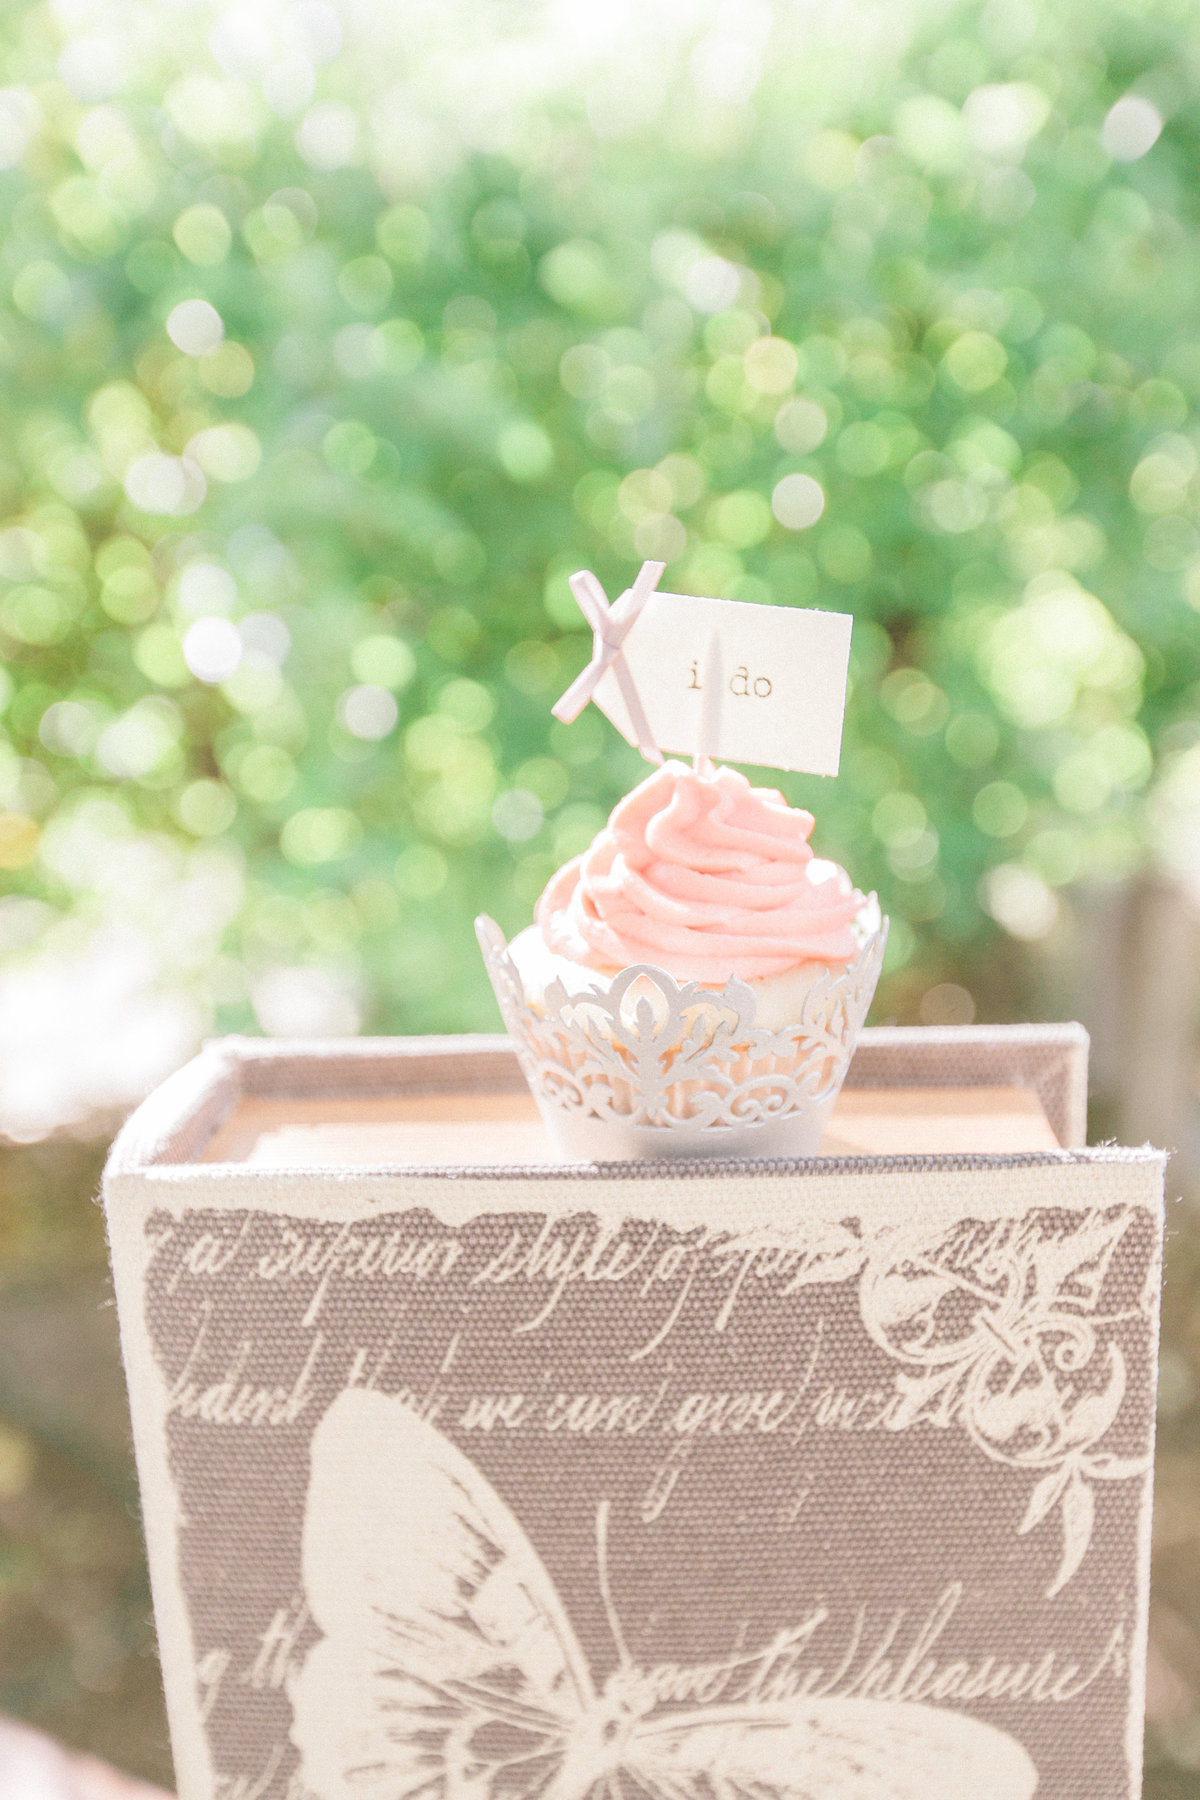 Say I Do Cupcake Flag Topper